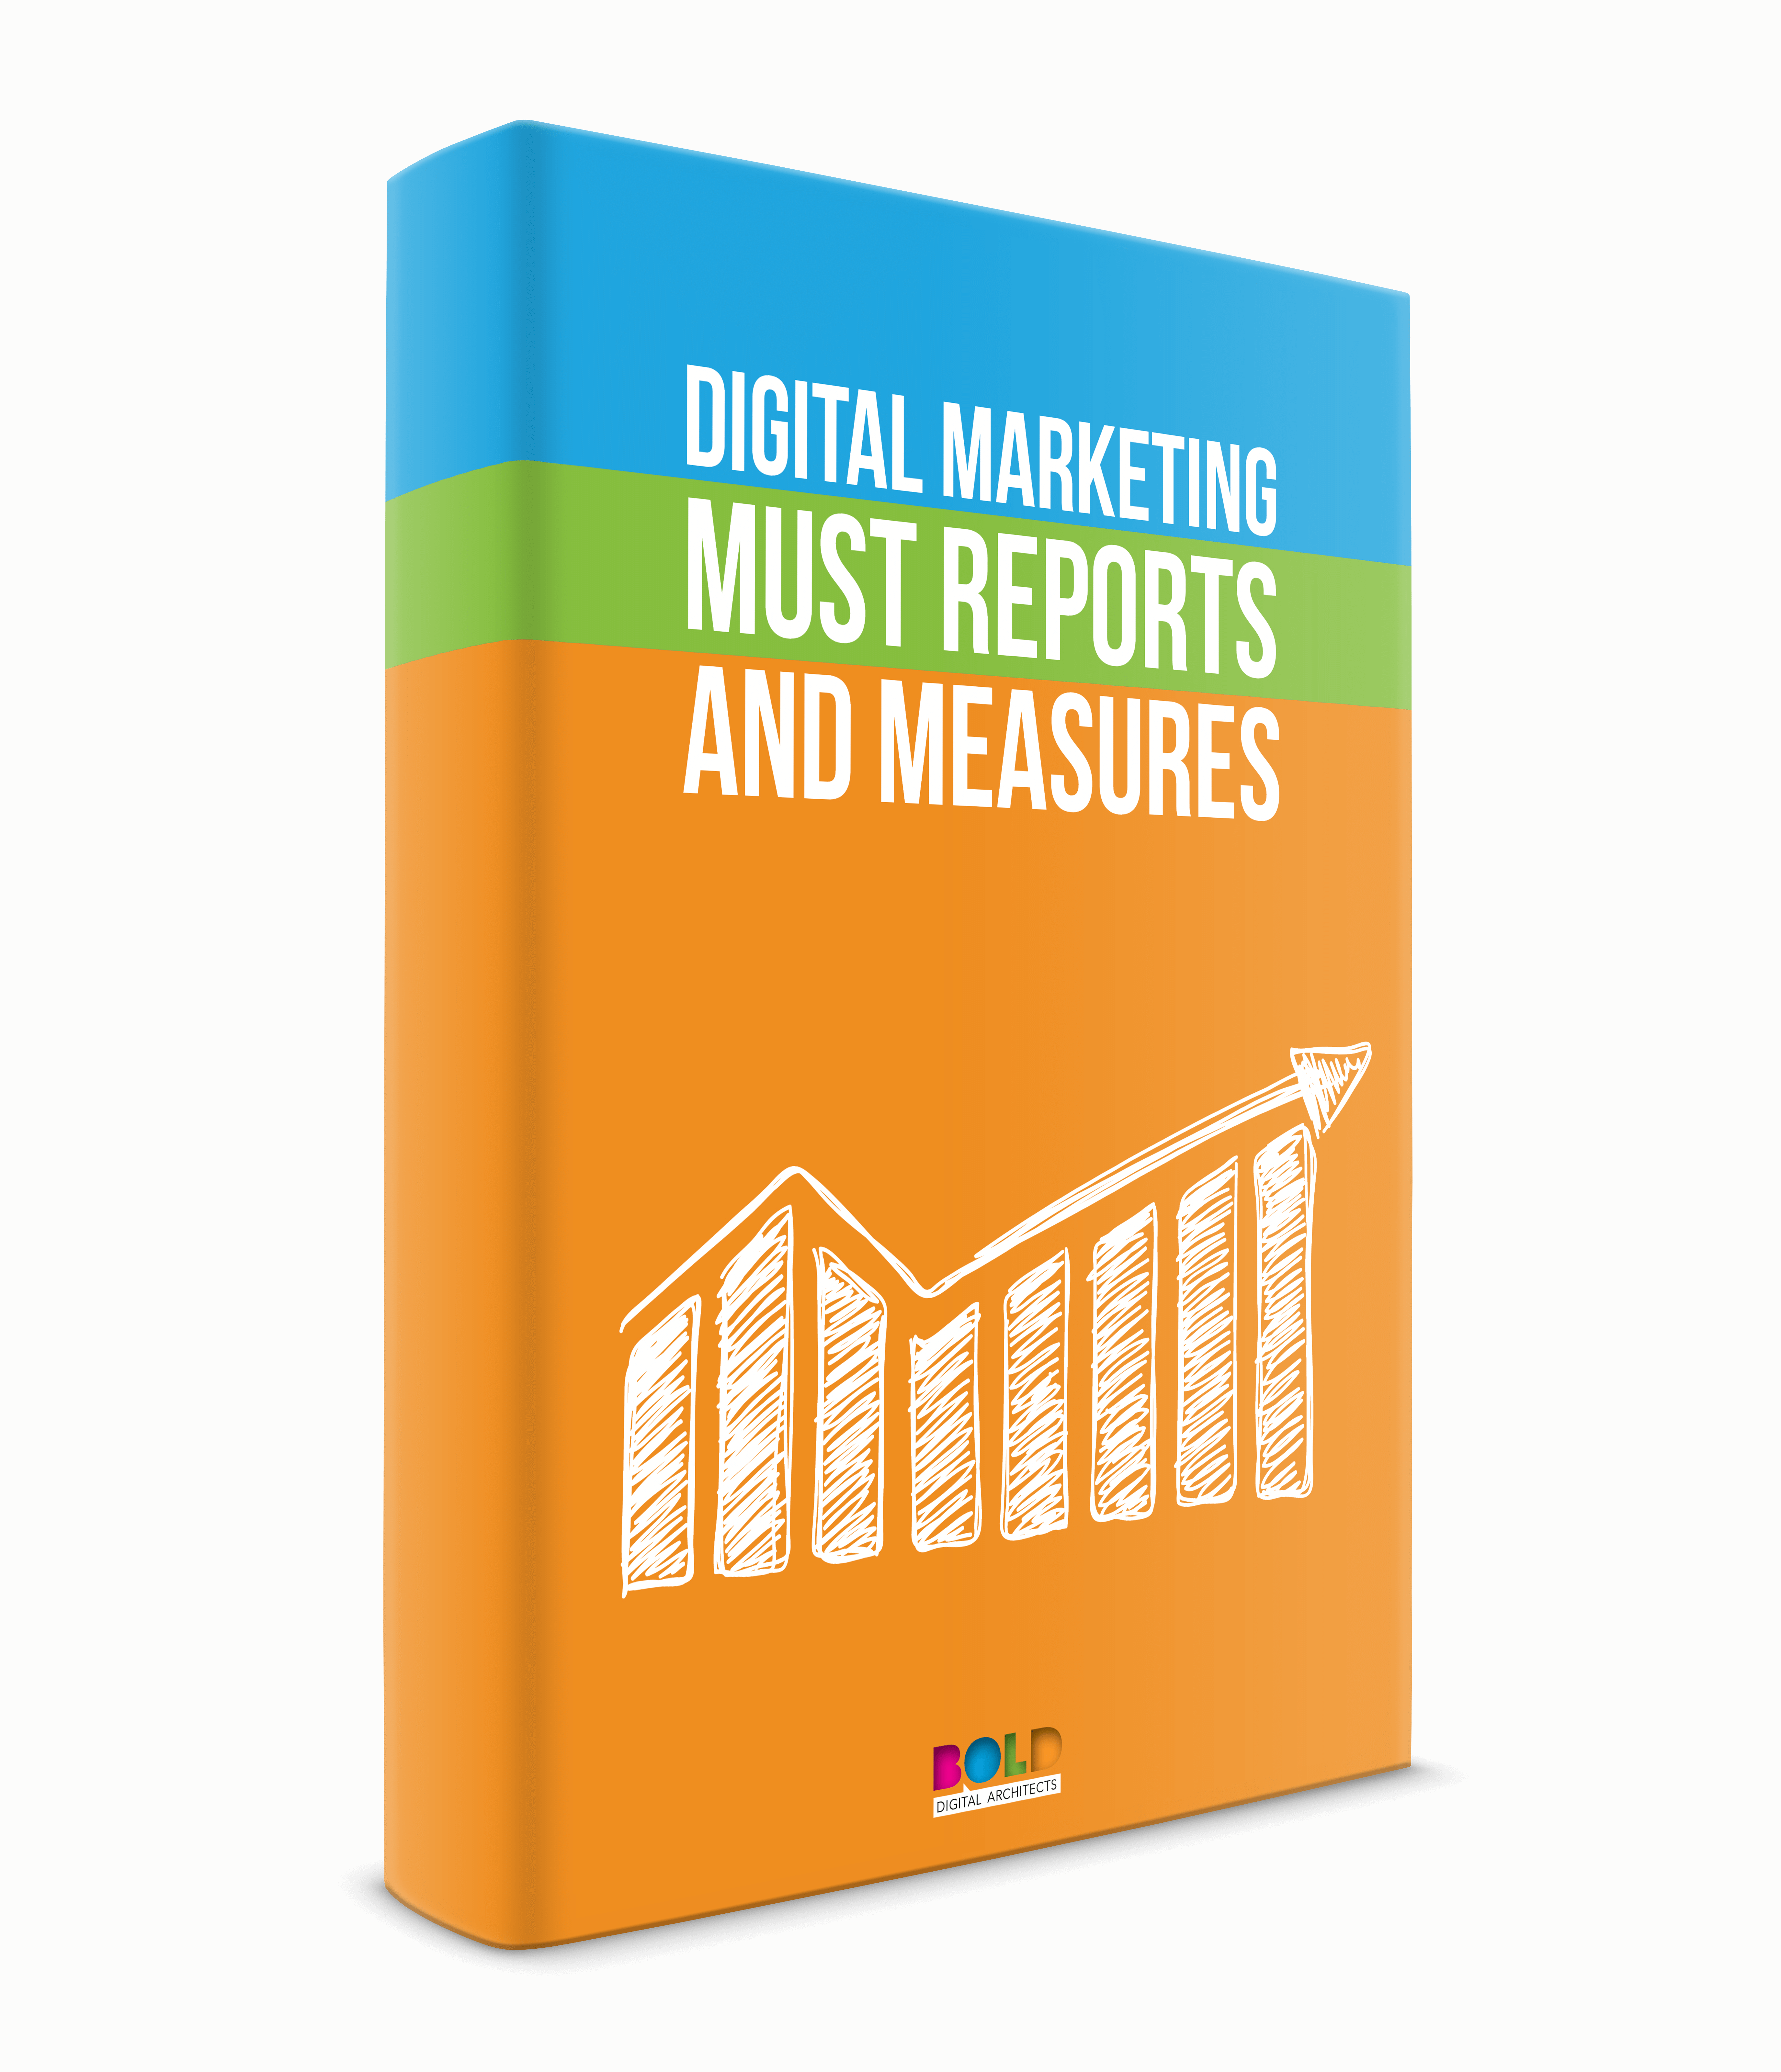 Digital Marketing MUST Reports and Measures